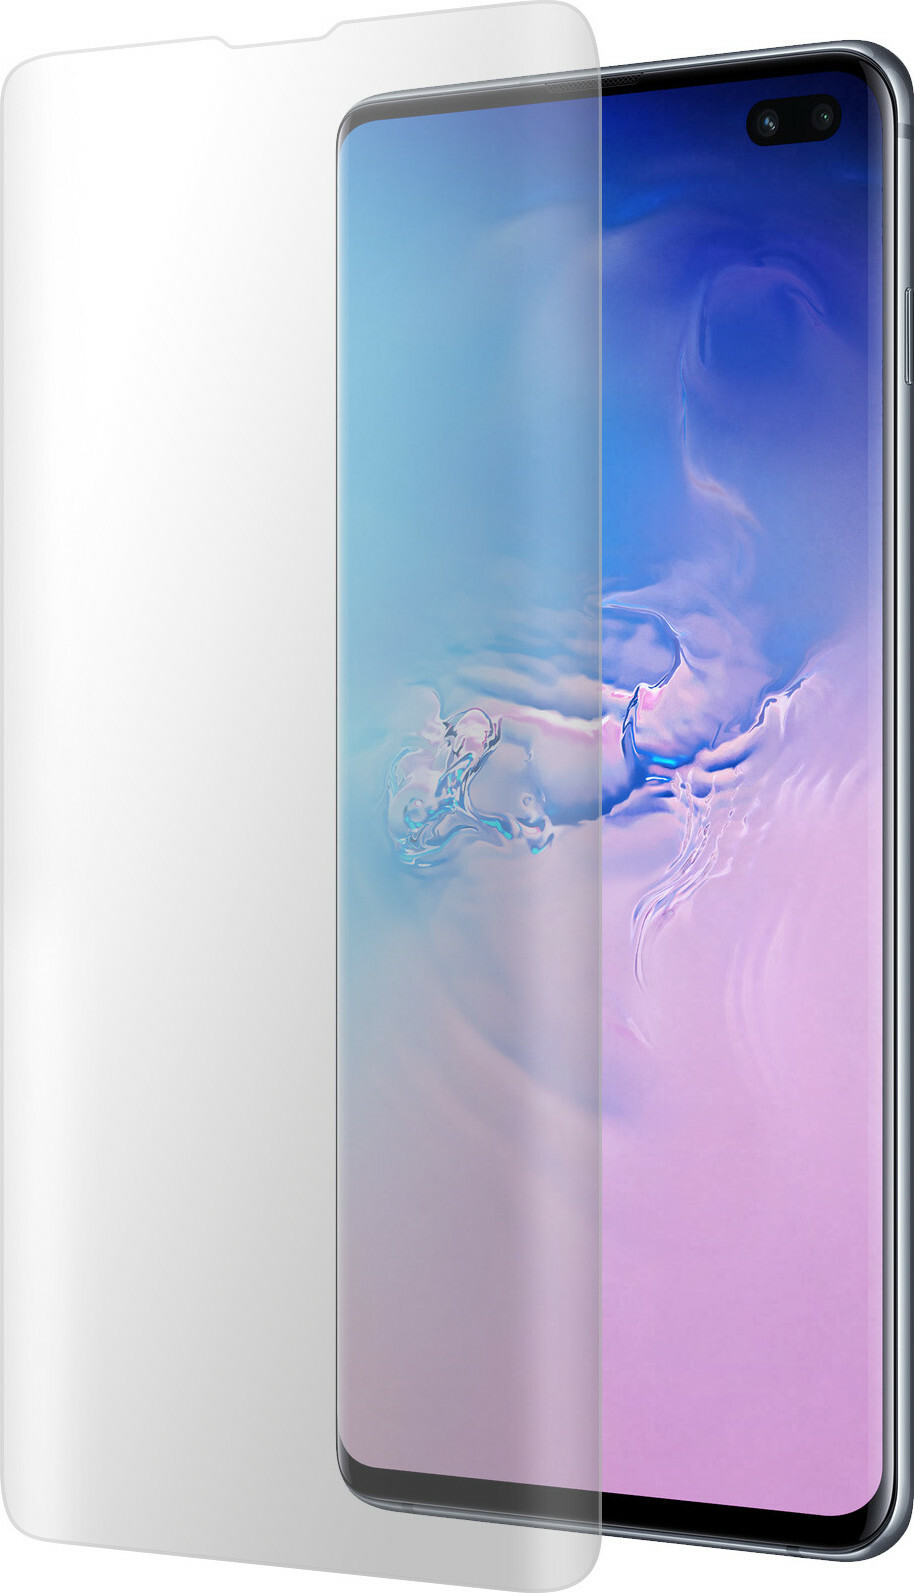 Mobiparts Curved Glass Samsung Galaxy S10 Plus